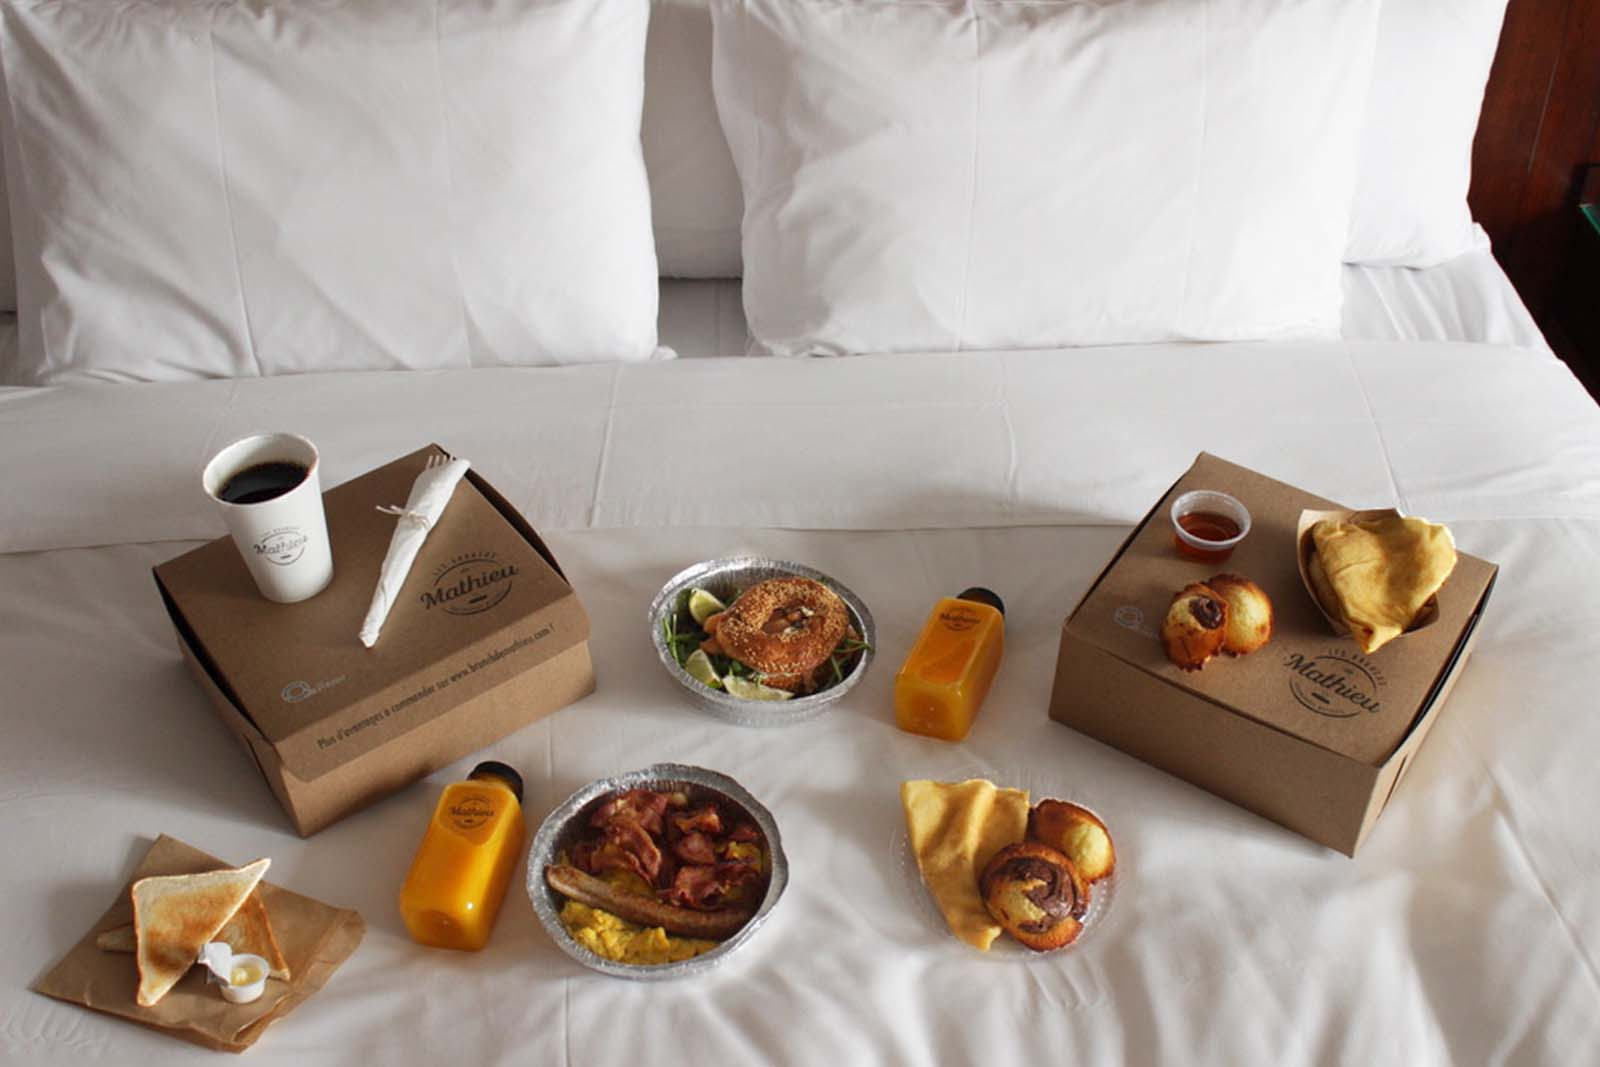 In a cosy Superior suite you will enjoy a delicious brunch by les brunchs de mathieu at le saint-sulpice hotel